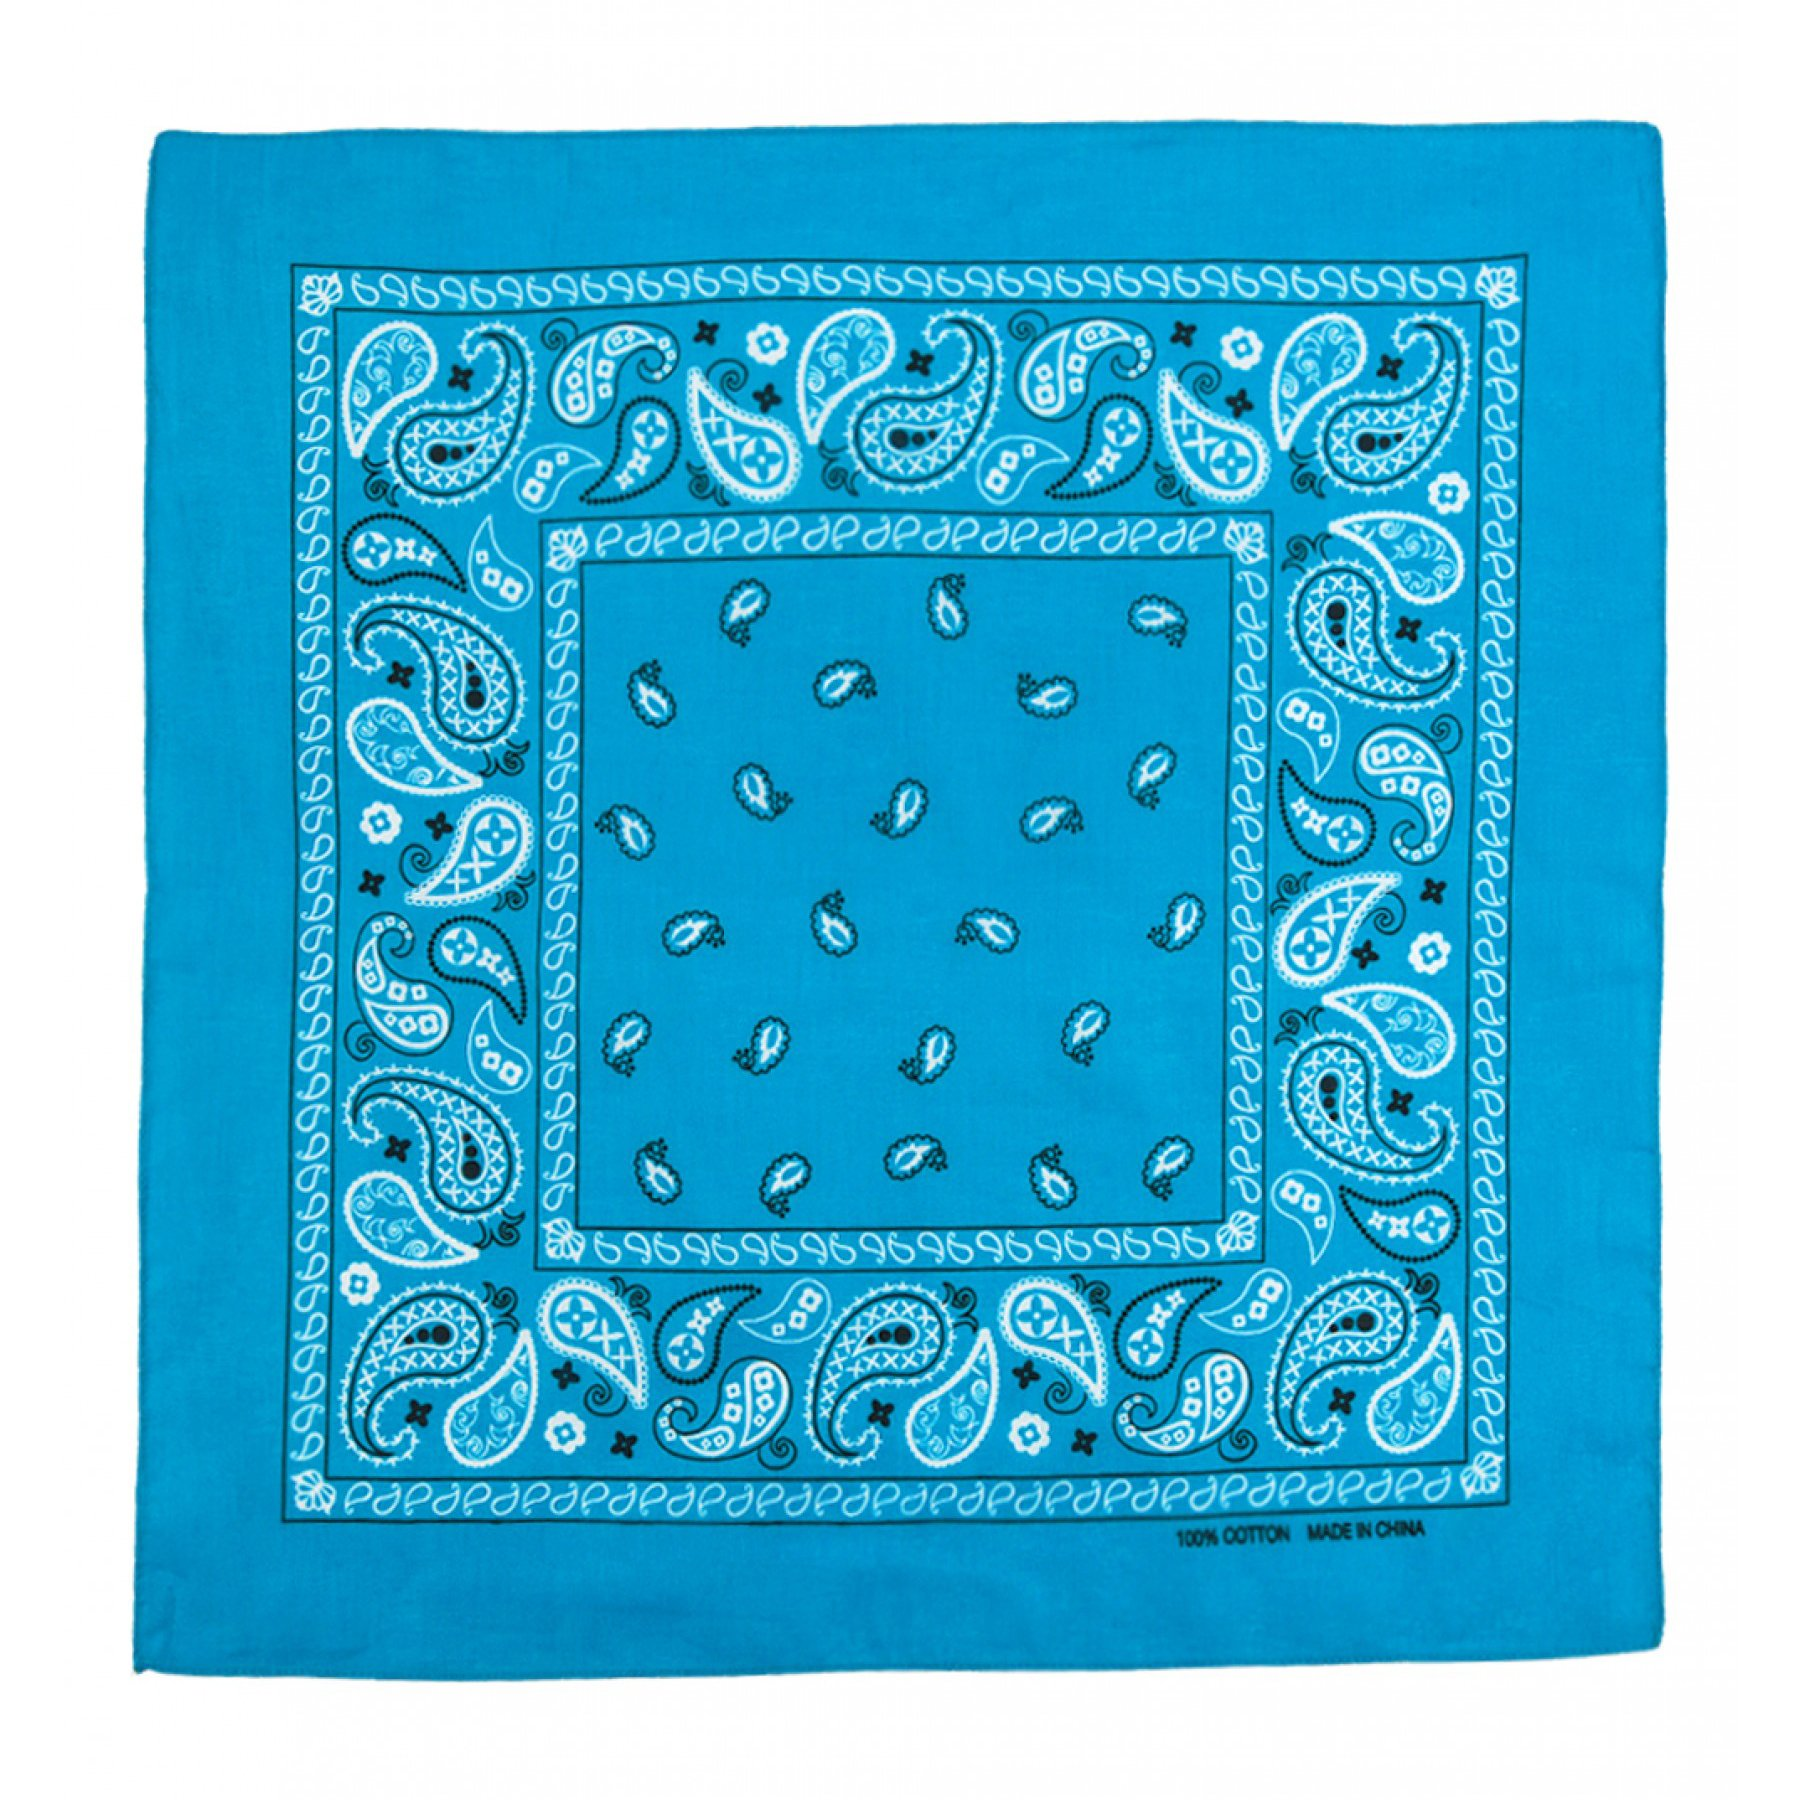 2ND DATE Classic Cotton Bandana - Assorted Styles and Colors-TURQ-OS